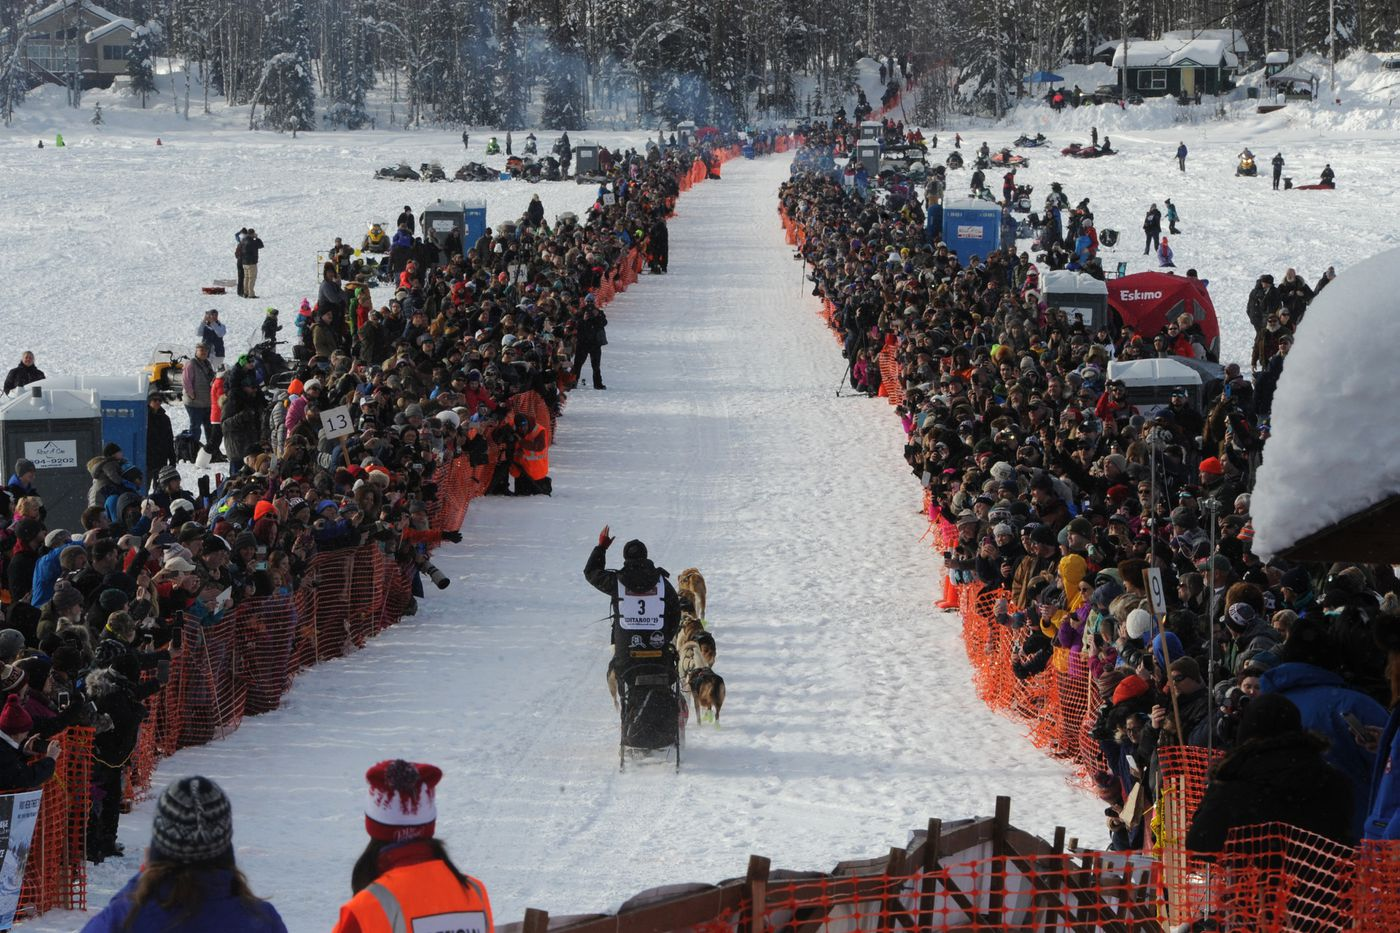 Musher Matt Hall waves to the crowd gathered on Willow Lake during the restart of the Iditarod on Sunday afternoon, March 3. (Bill Roth / ADN)